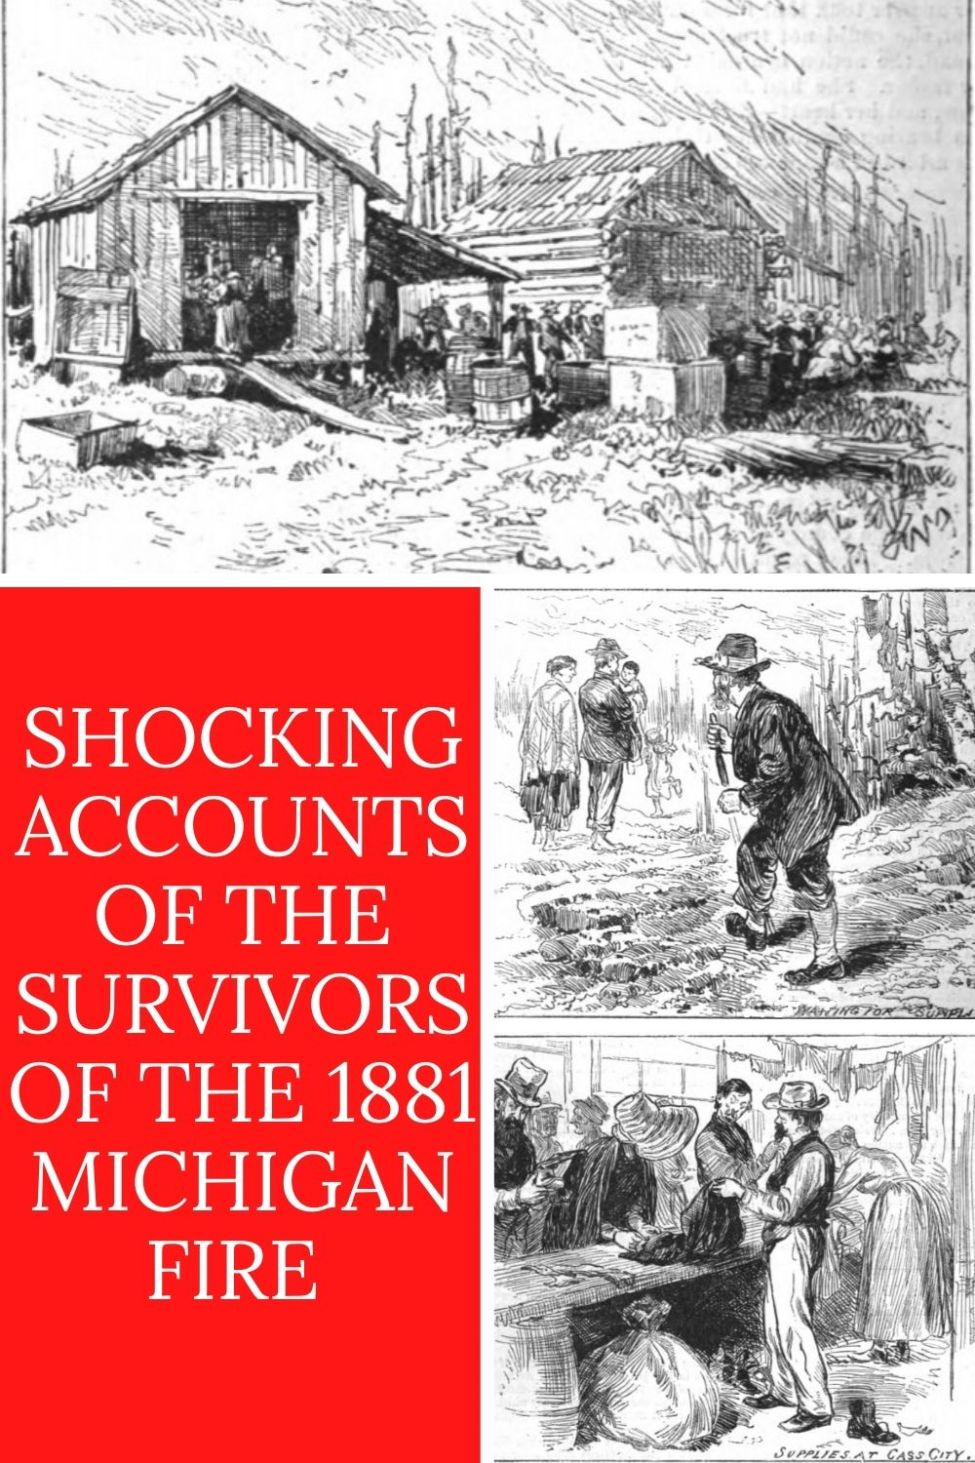 Shocking firsthand accounts of the Great Michigan Fire of 1881 from residents of Minden and Ubly. They were first published by the Minden Post soon after the fire and reprinted by many newspapers  nationally. These accounts have never been published online before. Courtesy of the Minden City Herald. #PureMittenPride #MittenStateLove #Survival #Michigan #FindYourWild #OptOutside #GreatLakesState #PureMichigan #MichiganLove